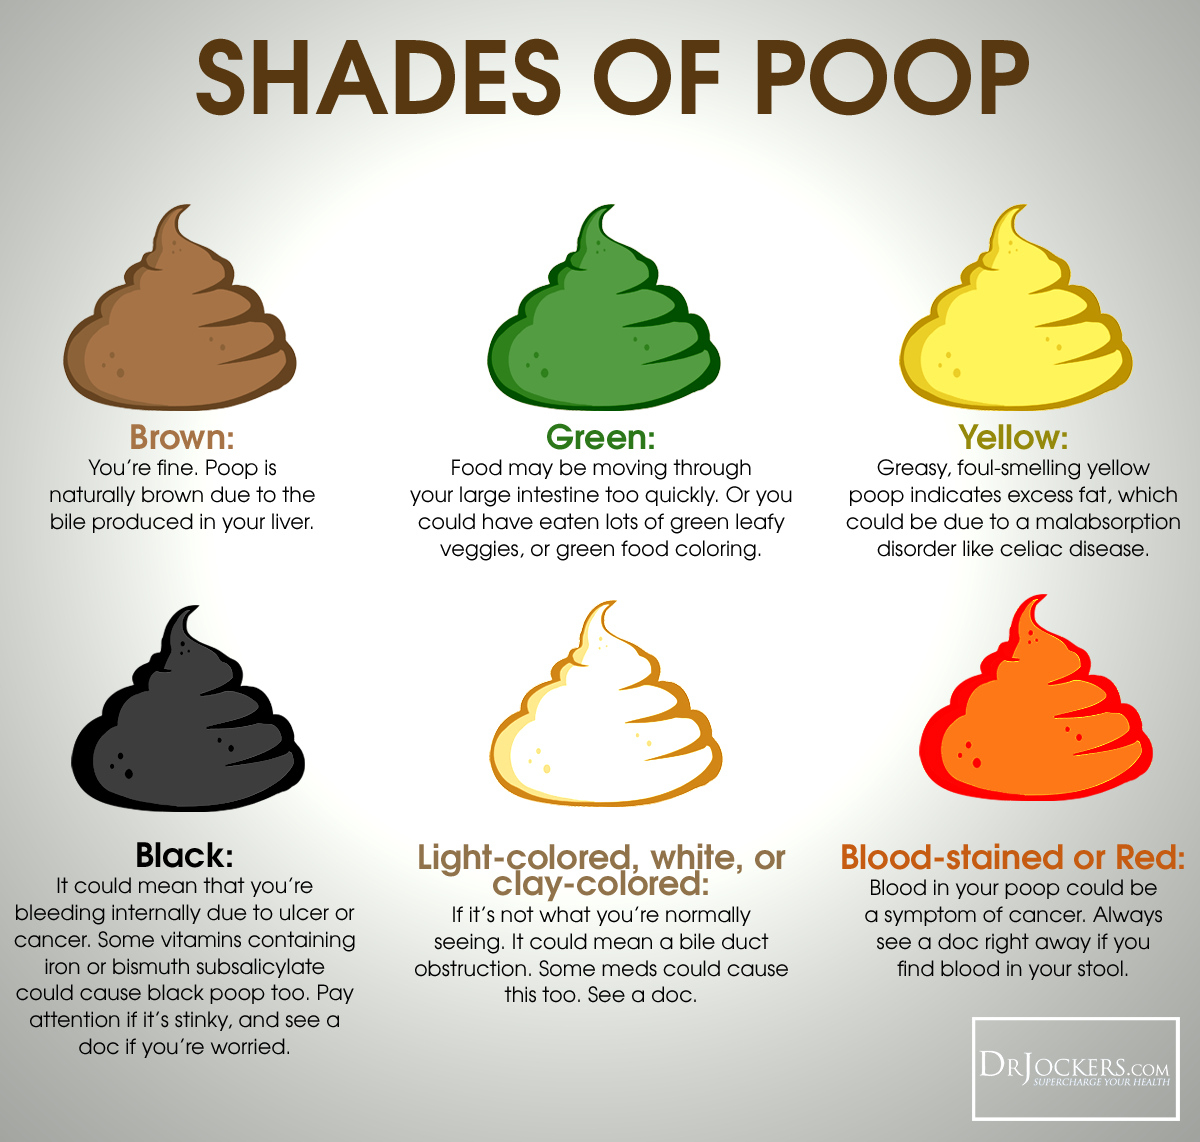 16 Ways To Achieve A Healthy Poop - Drjockerscom-3416